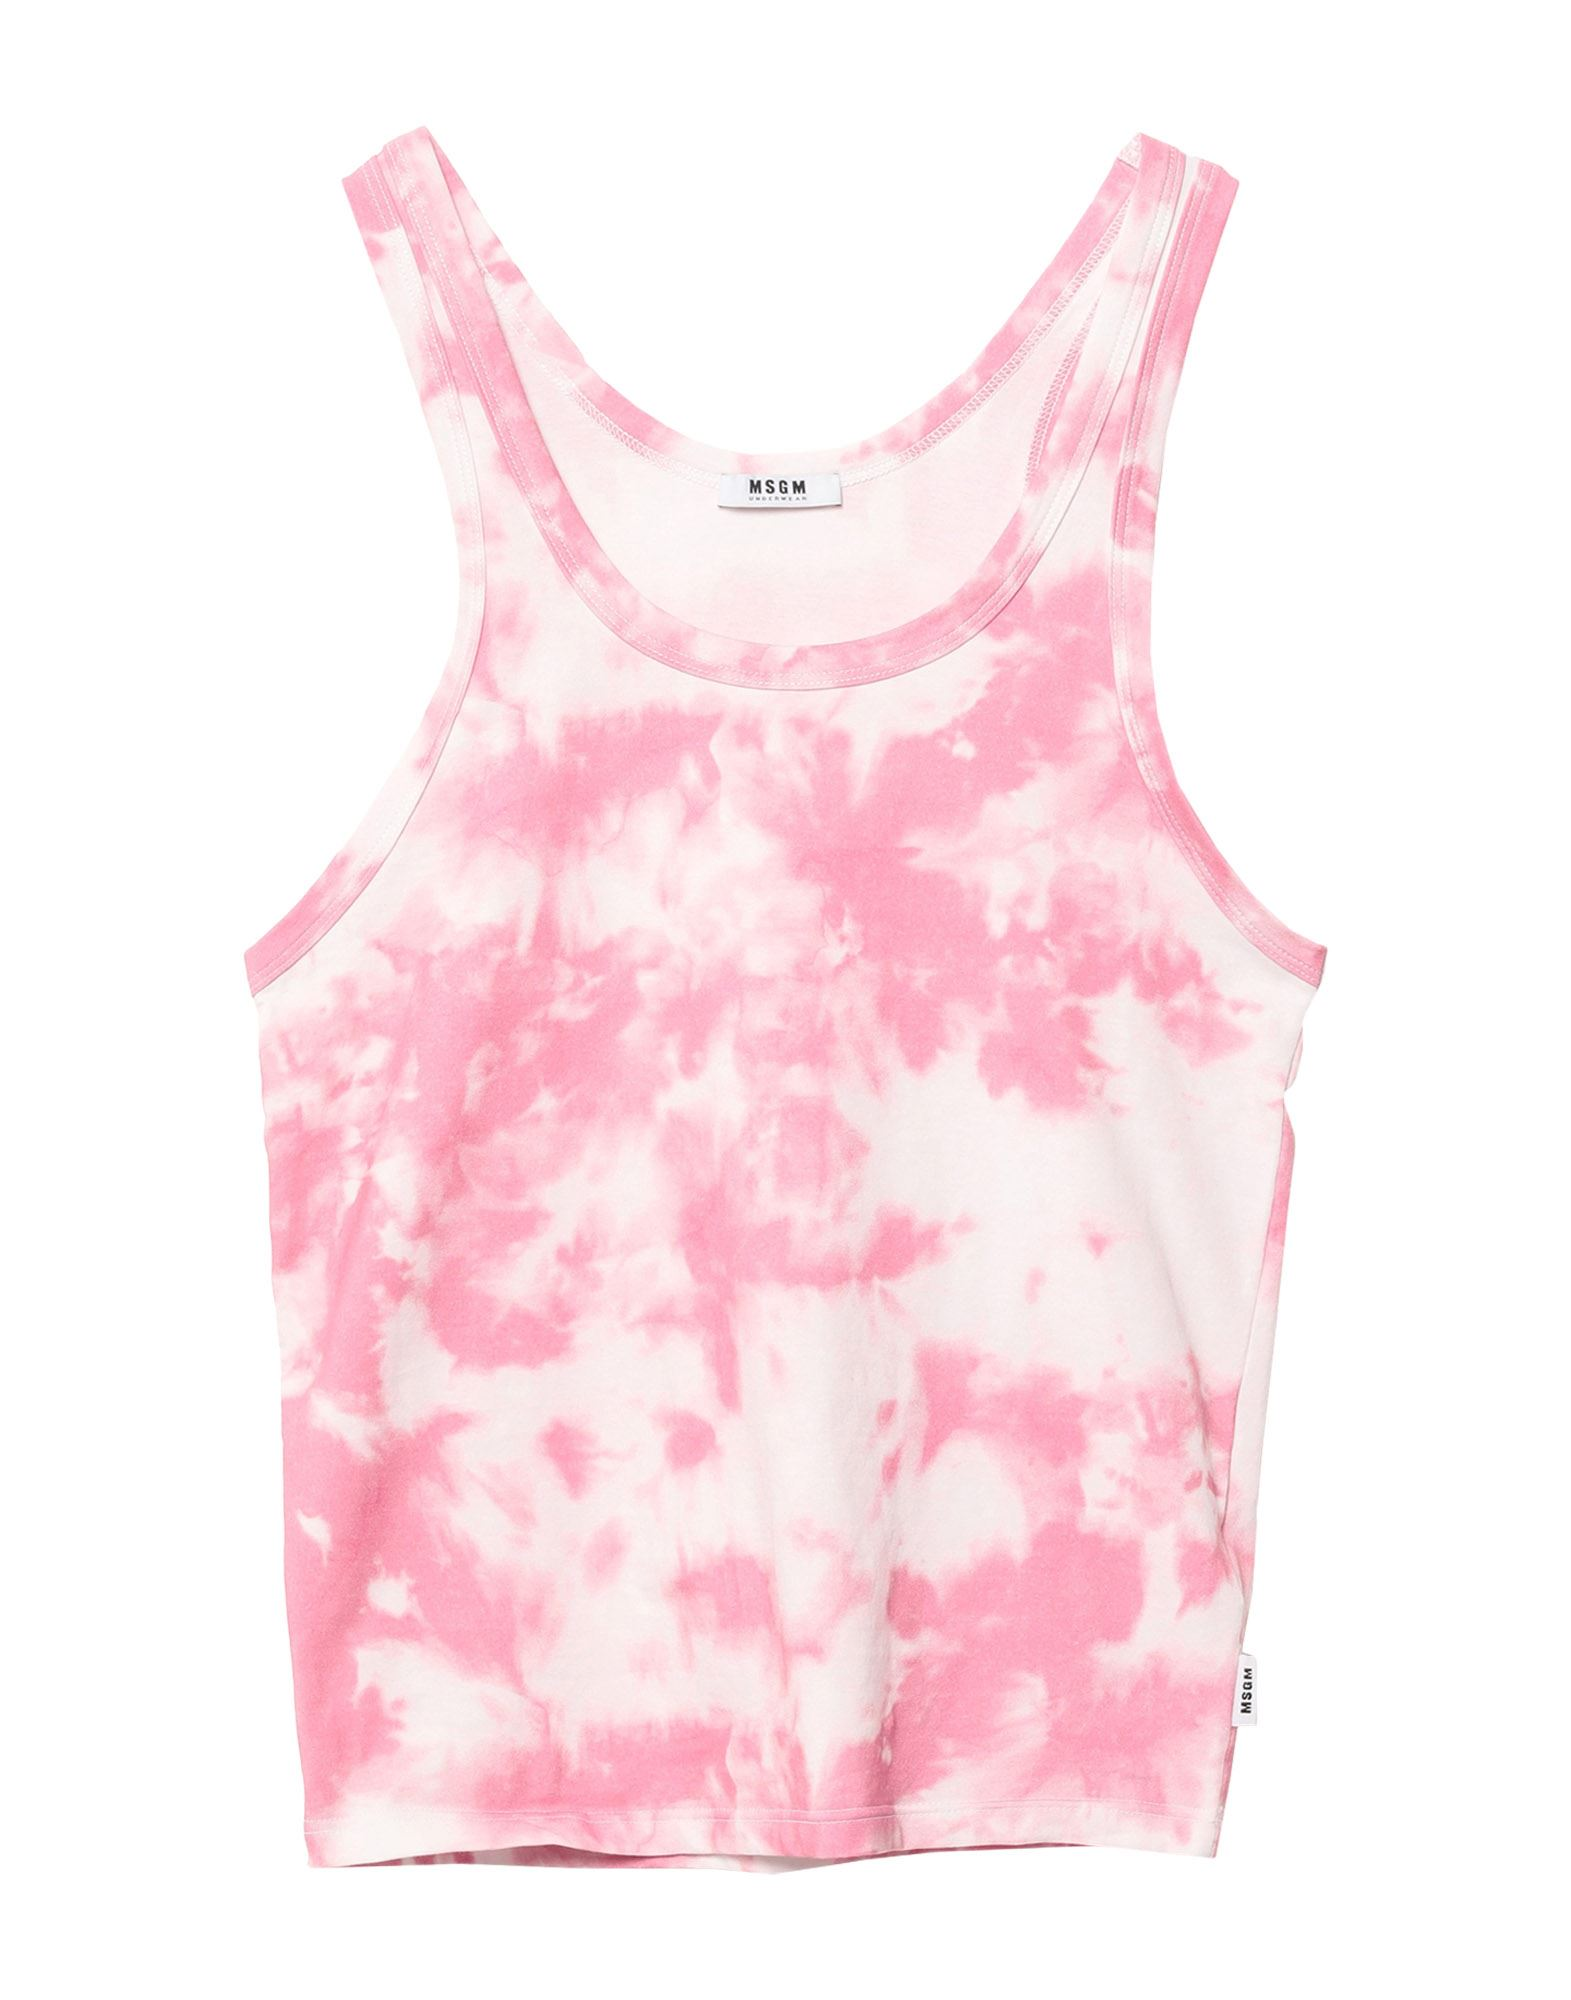 MSGM Tank tops. jersey, logo, two-tone, wide neckline, sleeveless, no pockets, stretch, any incidental differences in the material\\\'s pattern are a guarantee of the product\\\'s originality, large sized. 94% Cotton, 6% Elastane